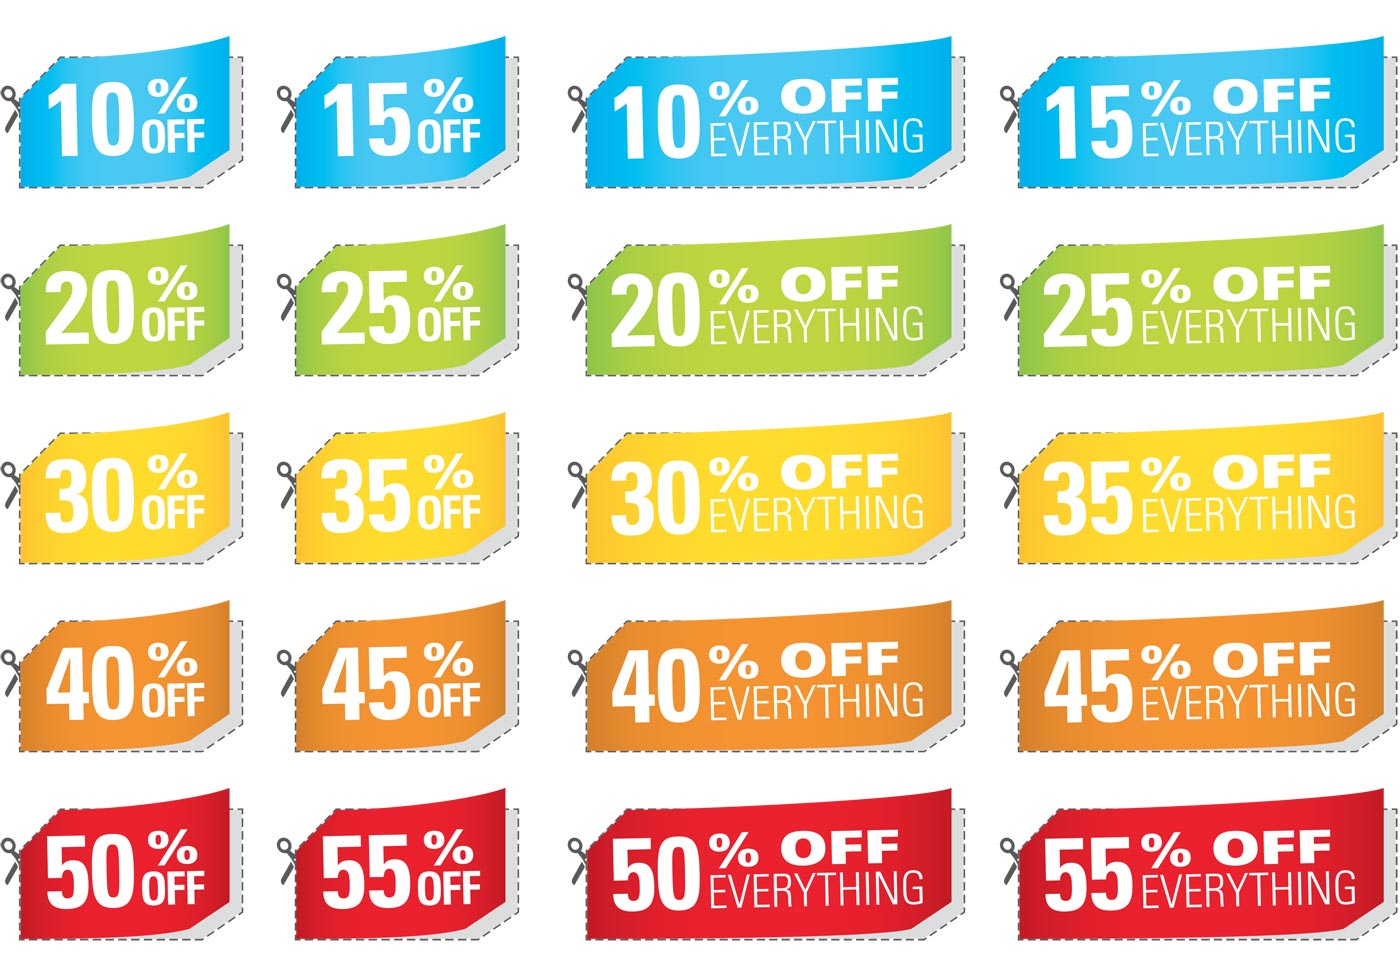 Tax cut coupons discounts